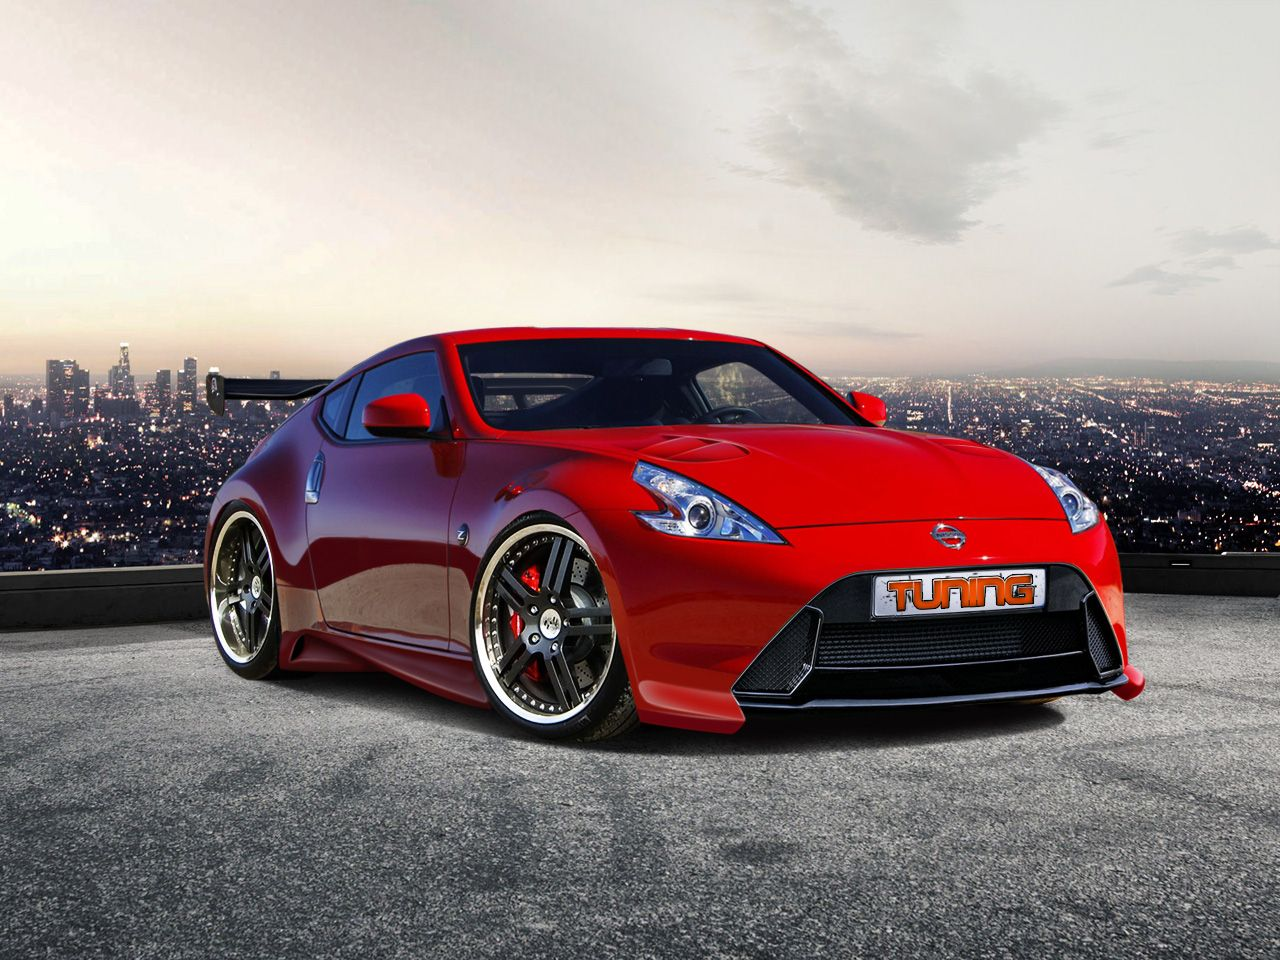 Nissan 370z F 1 C A R S Pinterest Nissan Nissan 370z And Cars